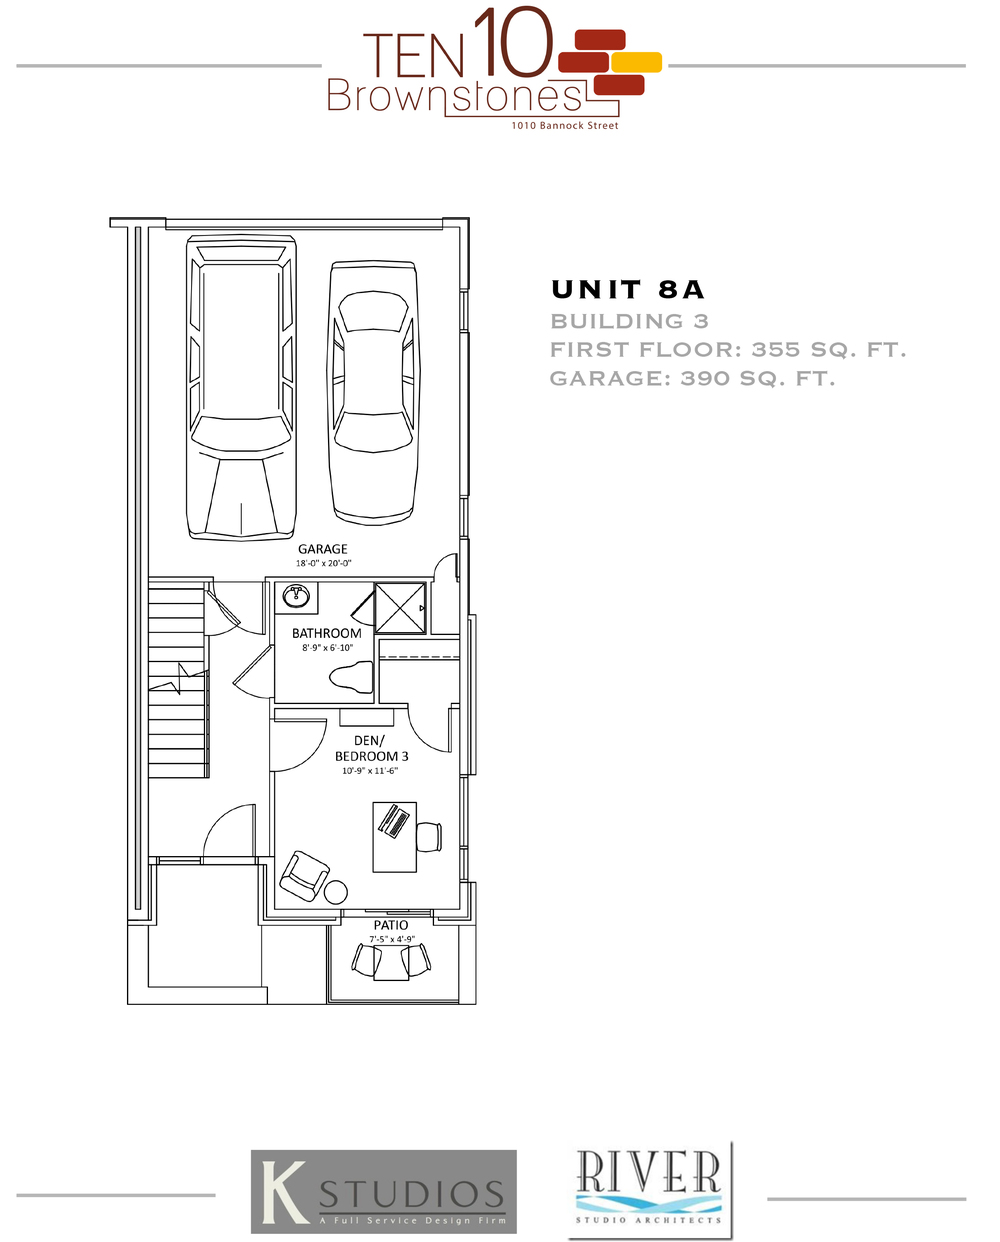 Click image to view & download Unit 8A floor plan